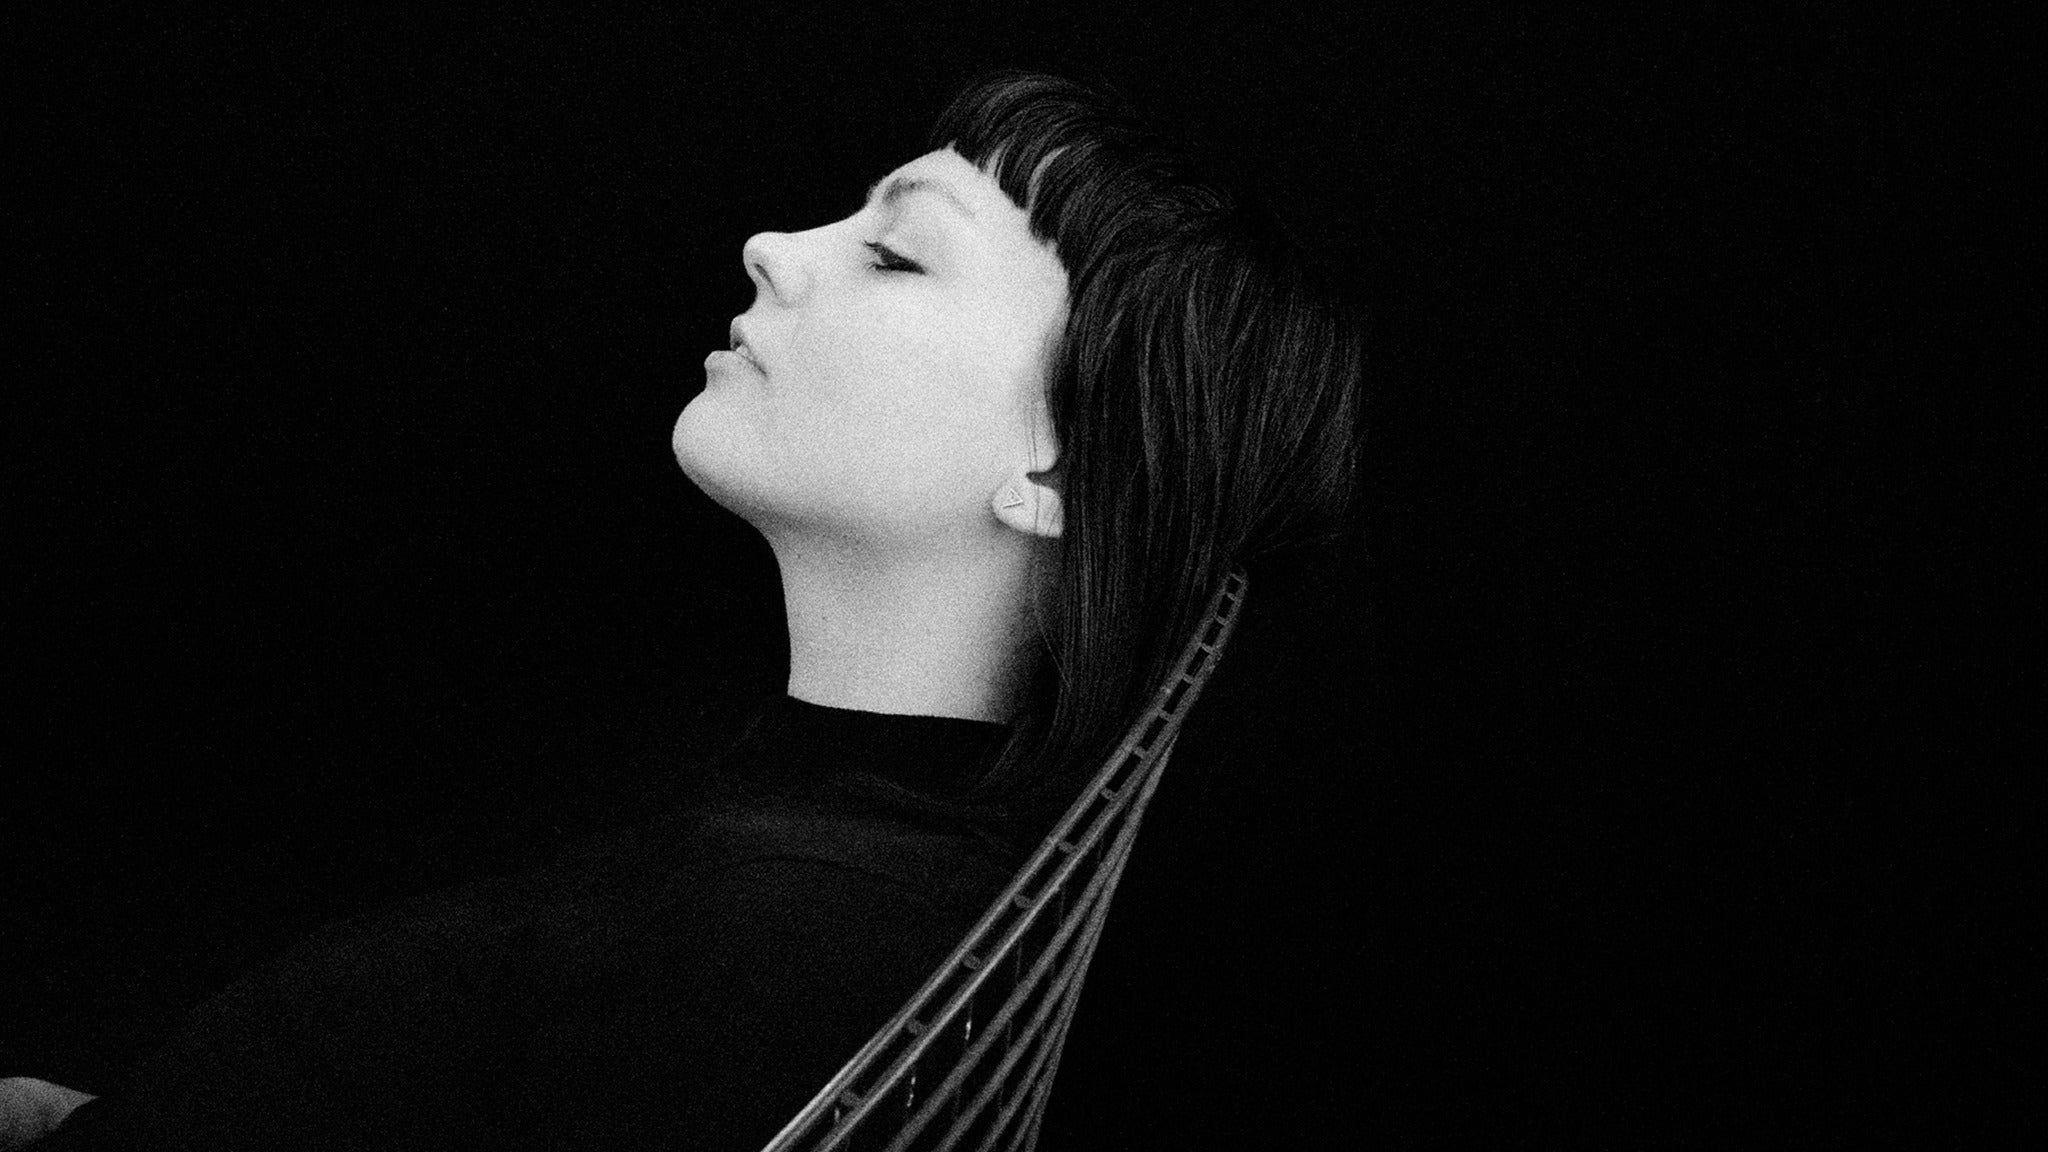 Angel Olsen presented by 91.9 WFPK at Mercury Ballroom